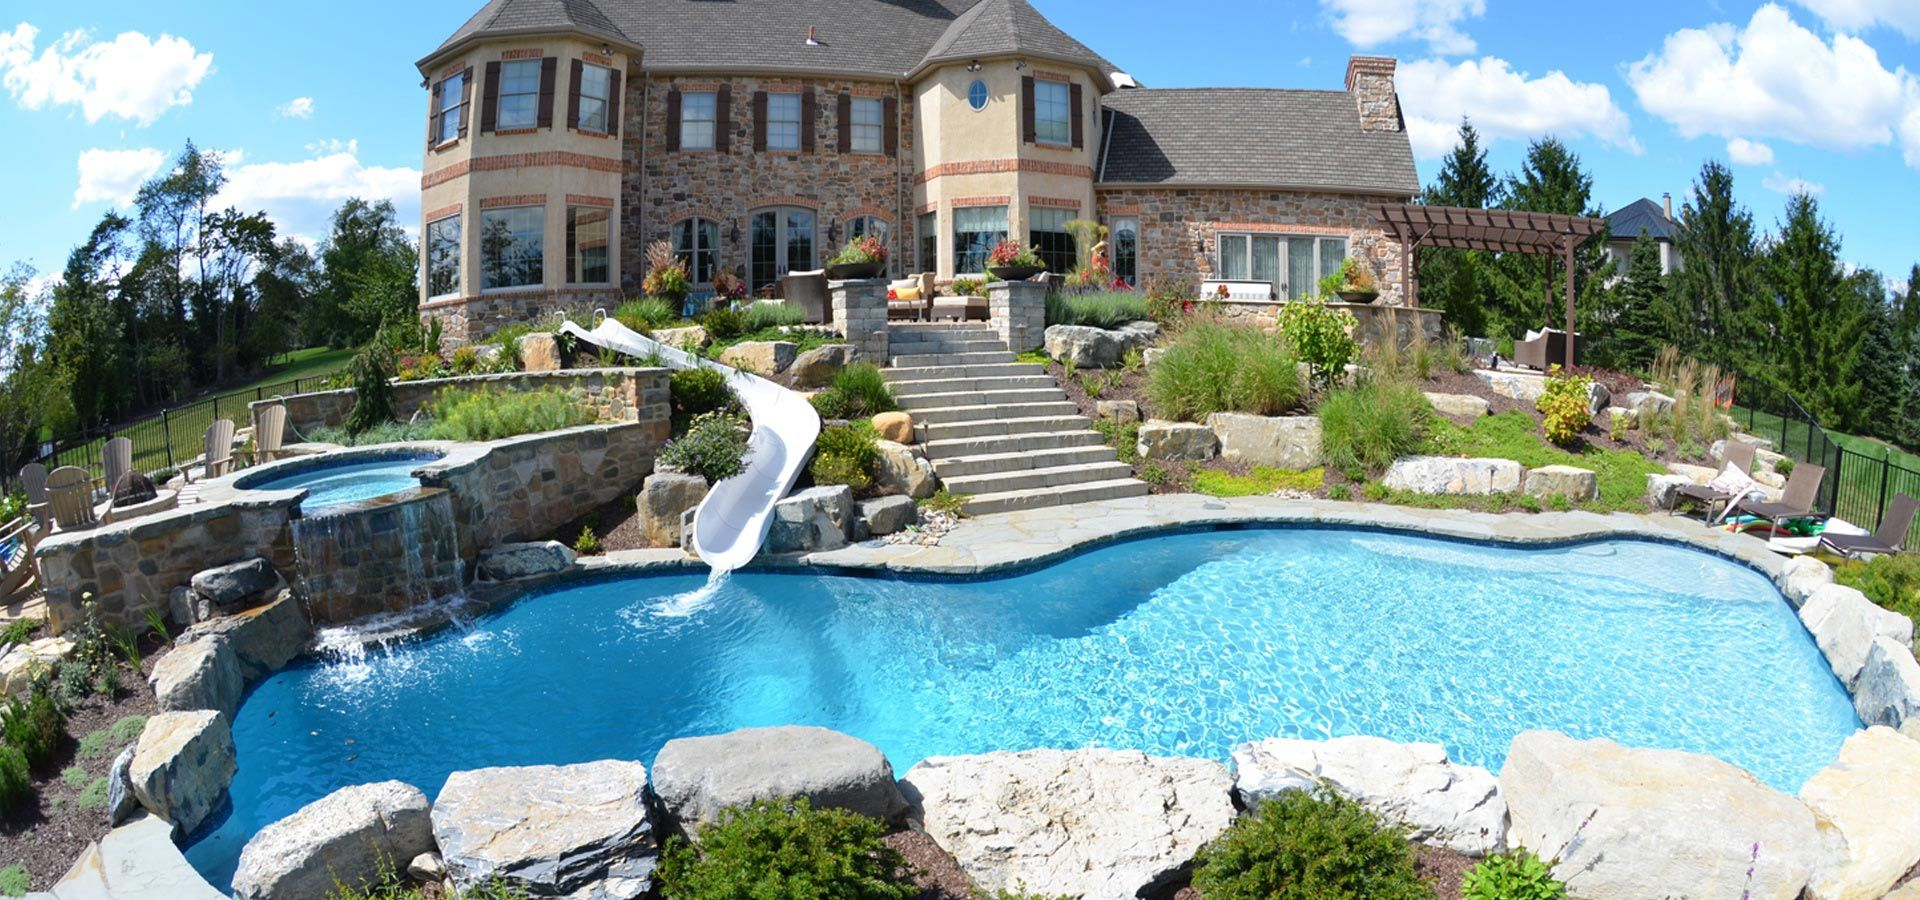 105 incredible pool and spa design - Swimming Pool Designs